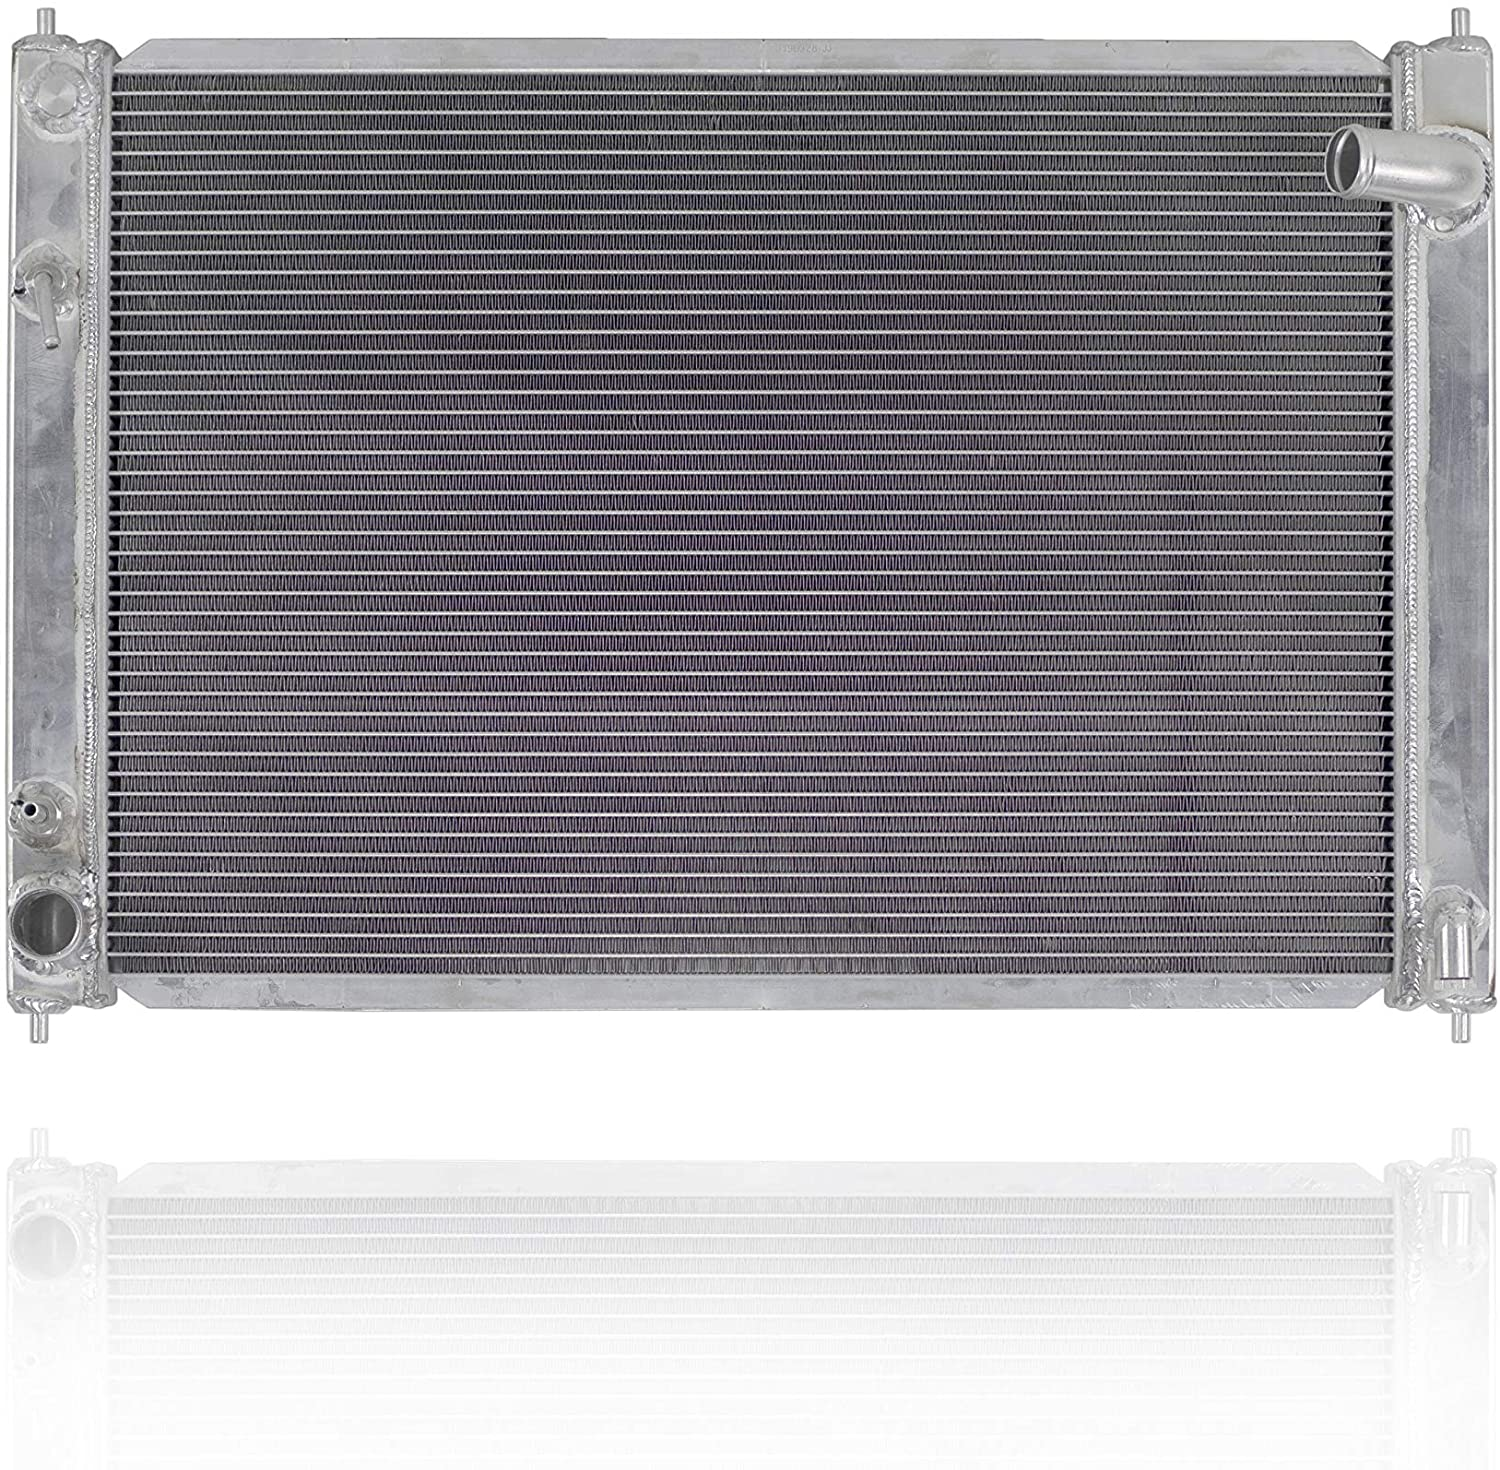 Radiator - PACIFIC BEST INC. For/Fit 08-13 Infiniti G37 07-08 G35 11-12 G25 10-18 370Z 14-15 Q60-Convertible Automatic Transmission - All-Aluminum With Bracket - 21460JK90B